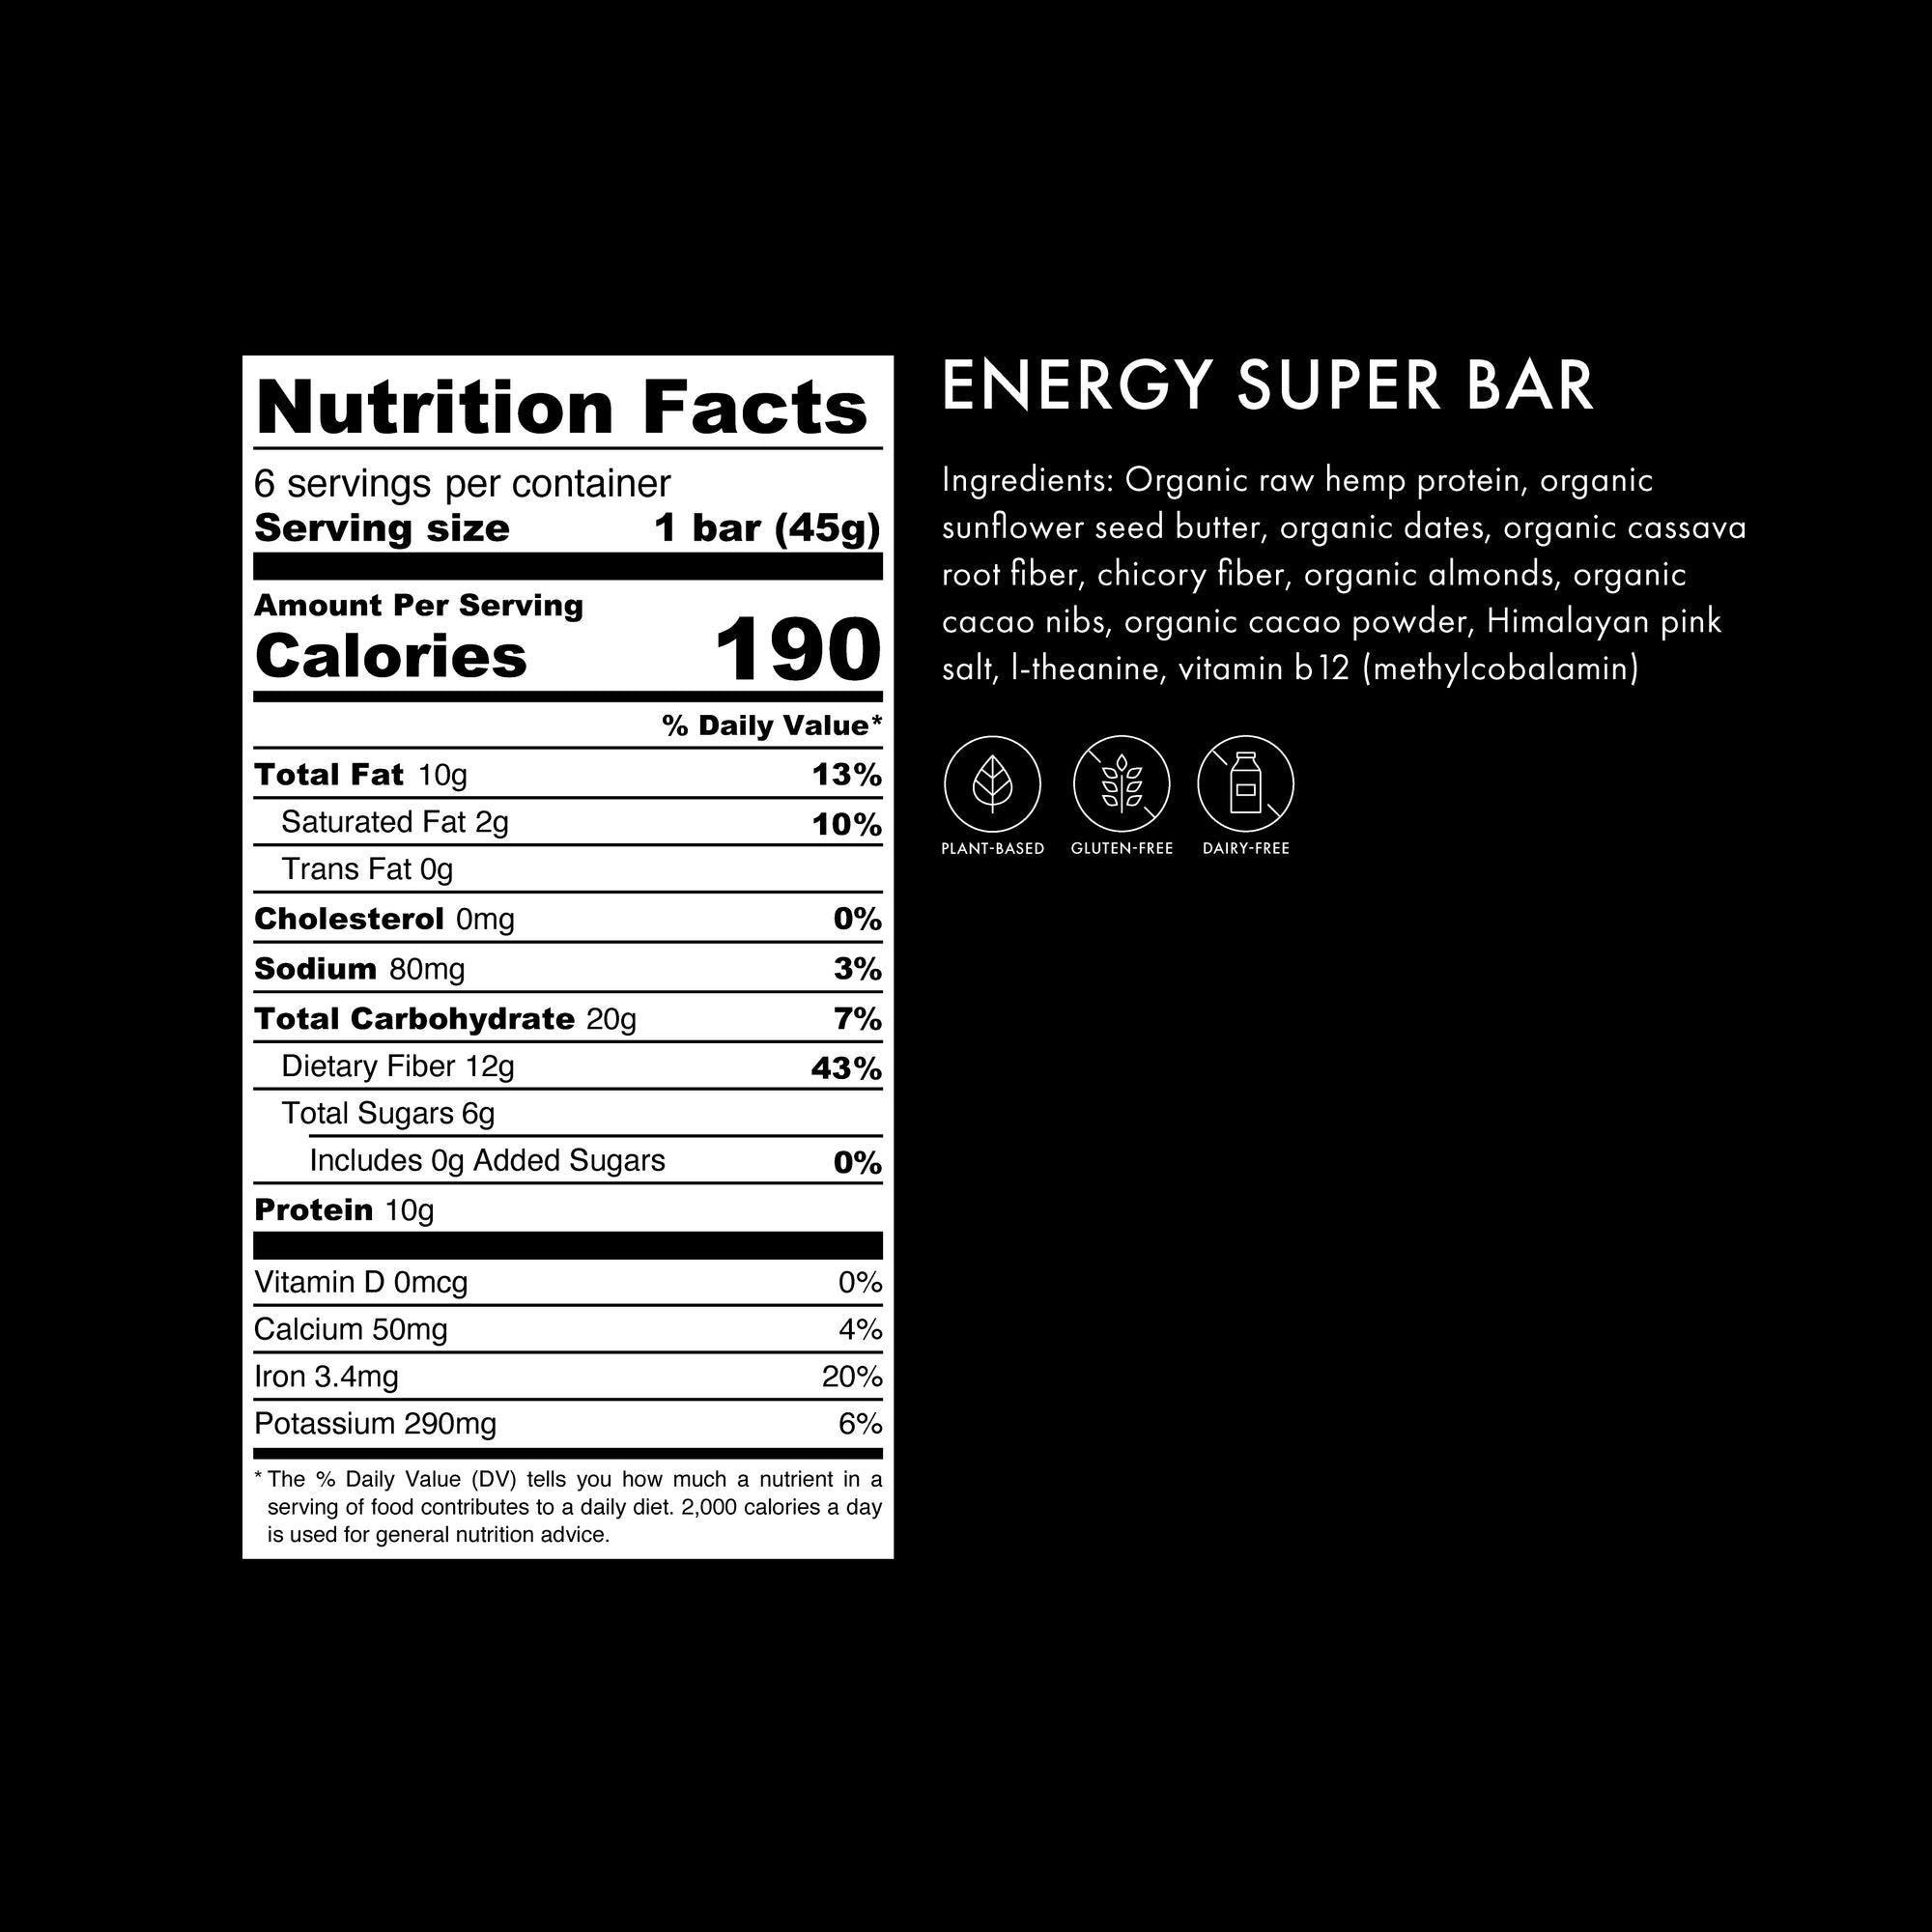 Energy Super Bar - Energy Super Bar